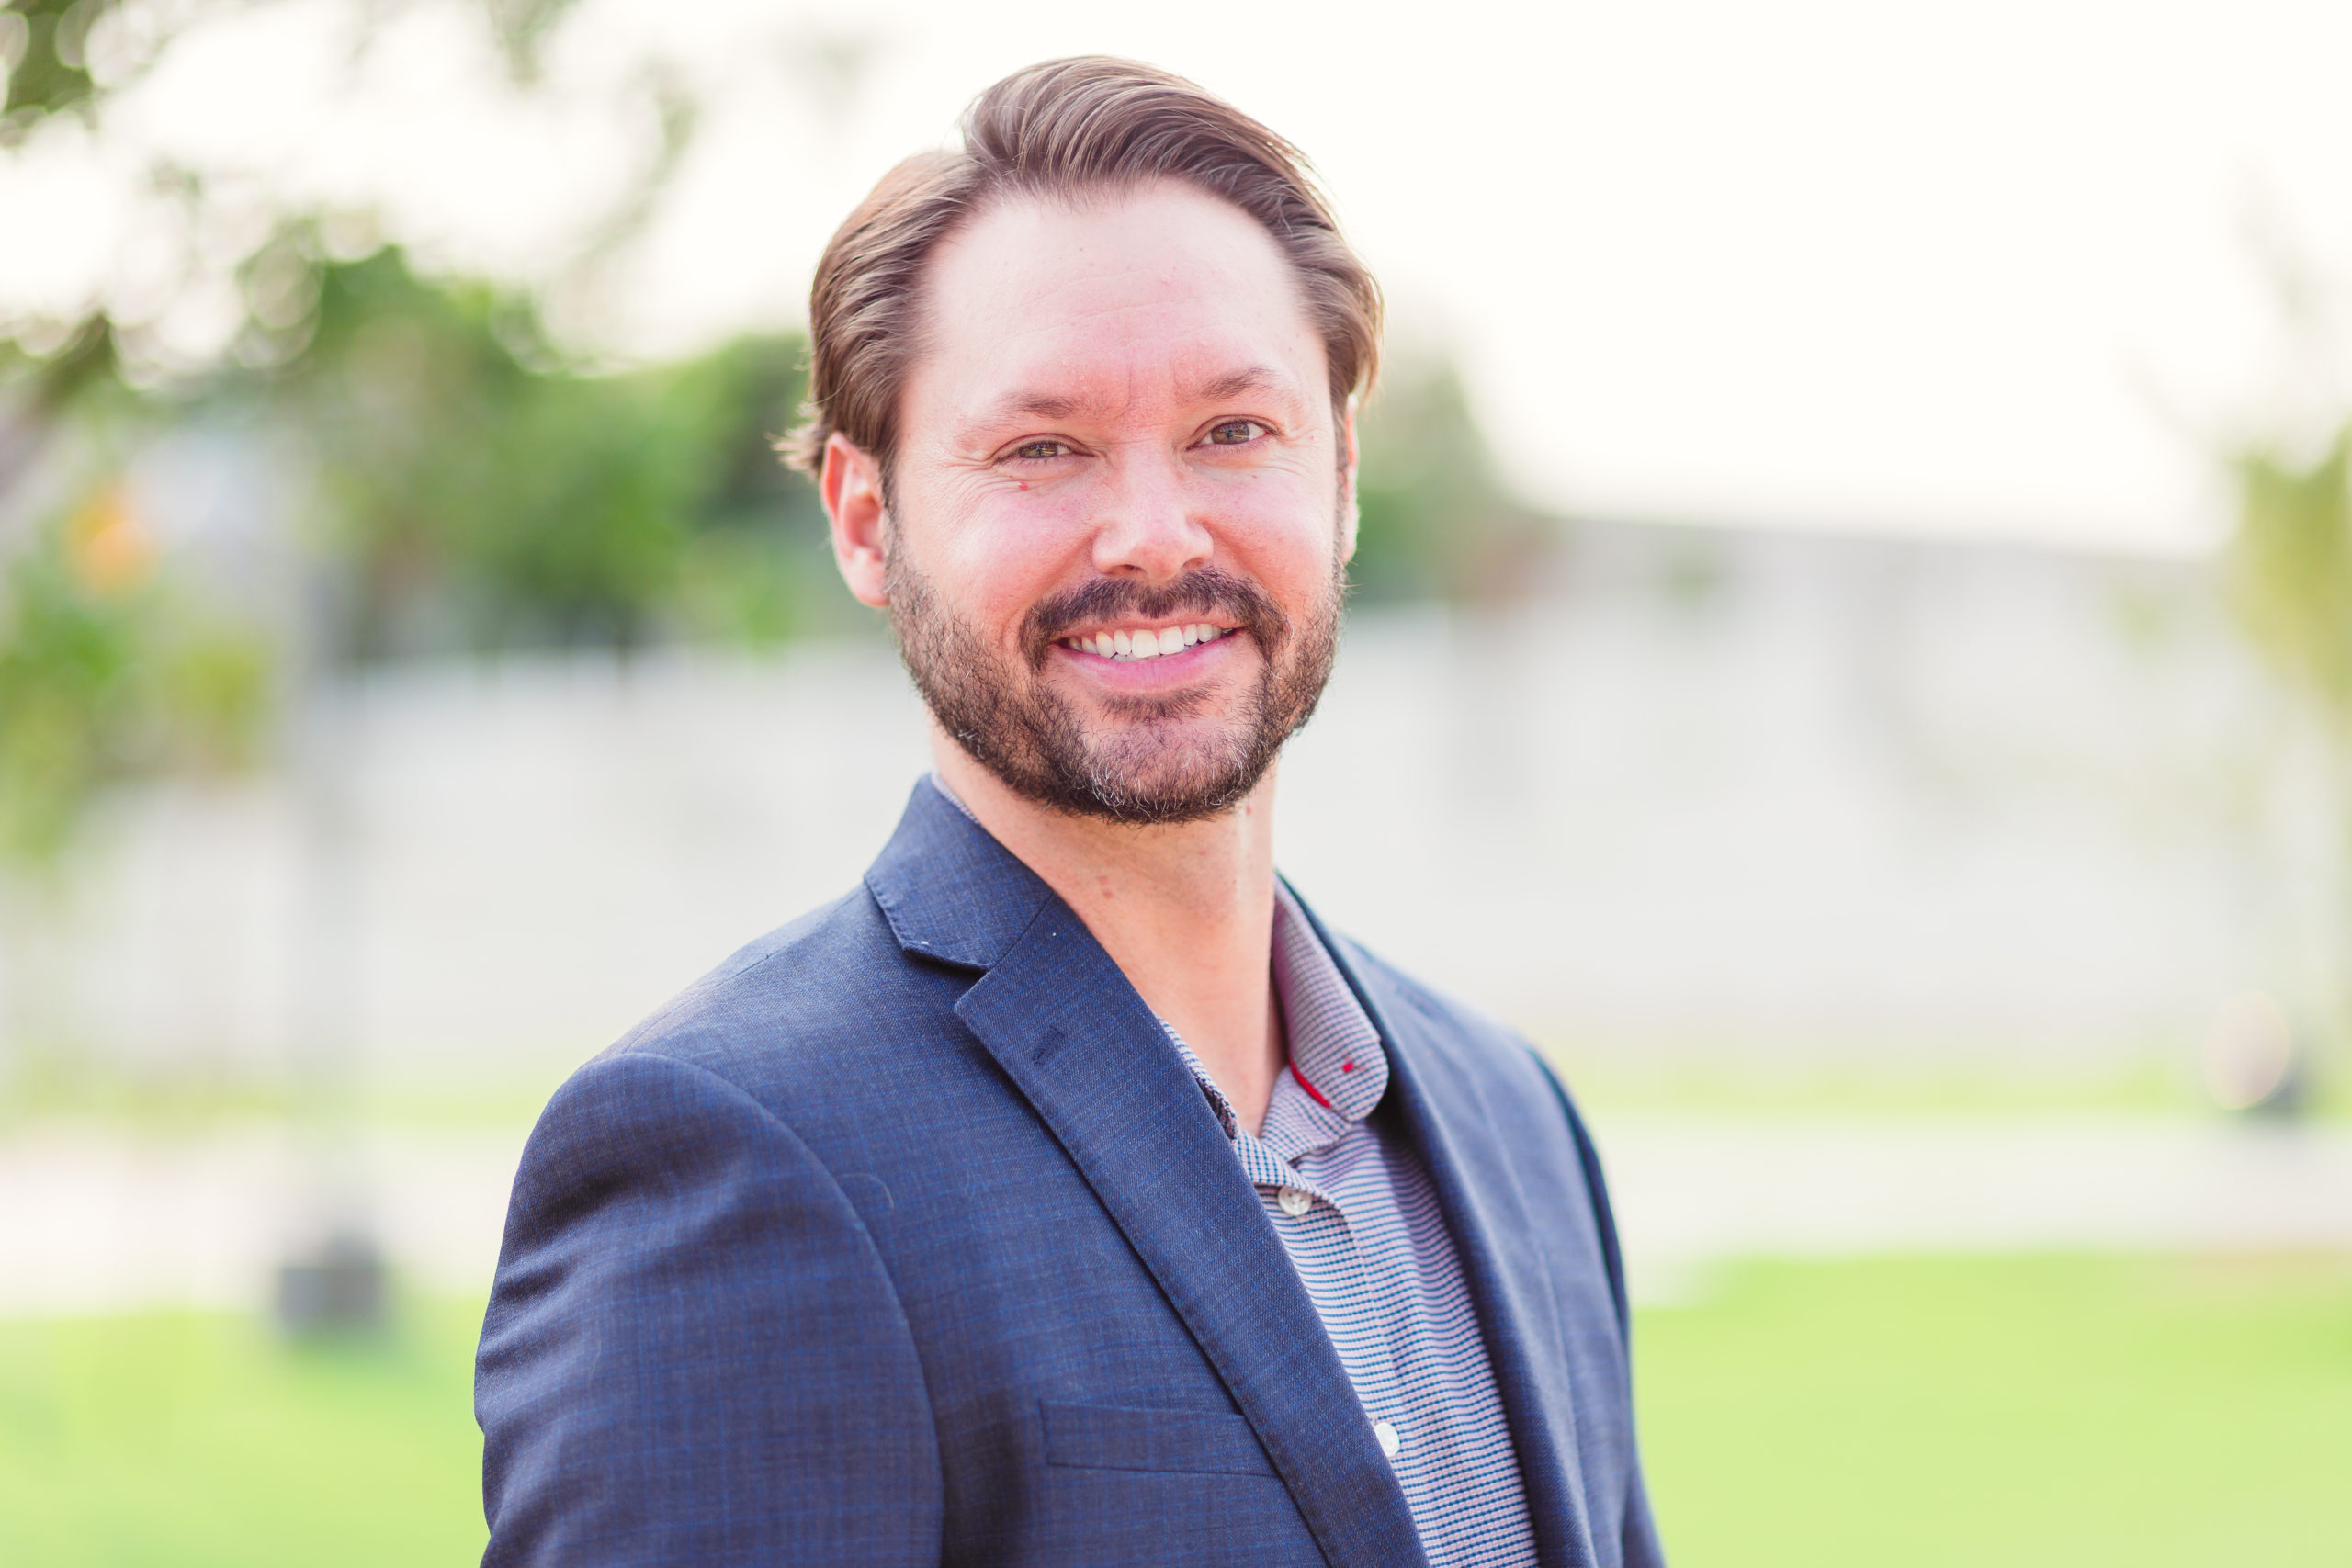 About Dr. Travis Whitney Innate Healthcare